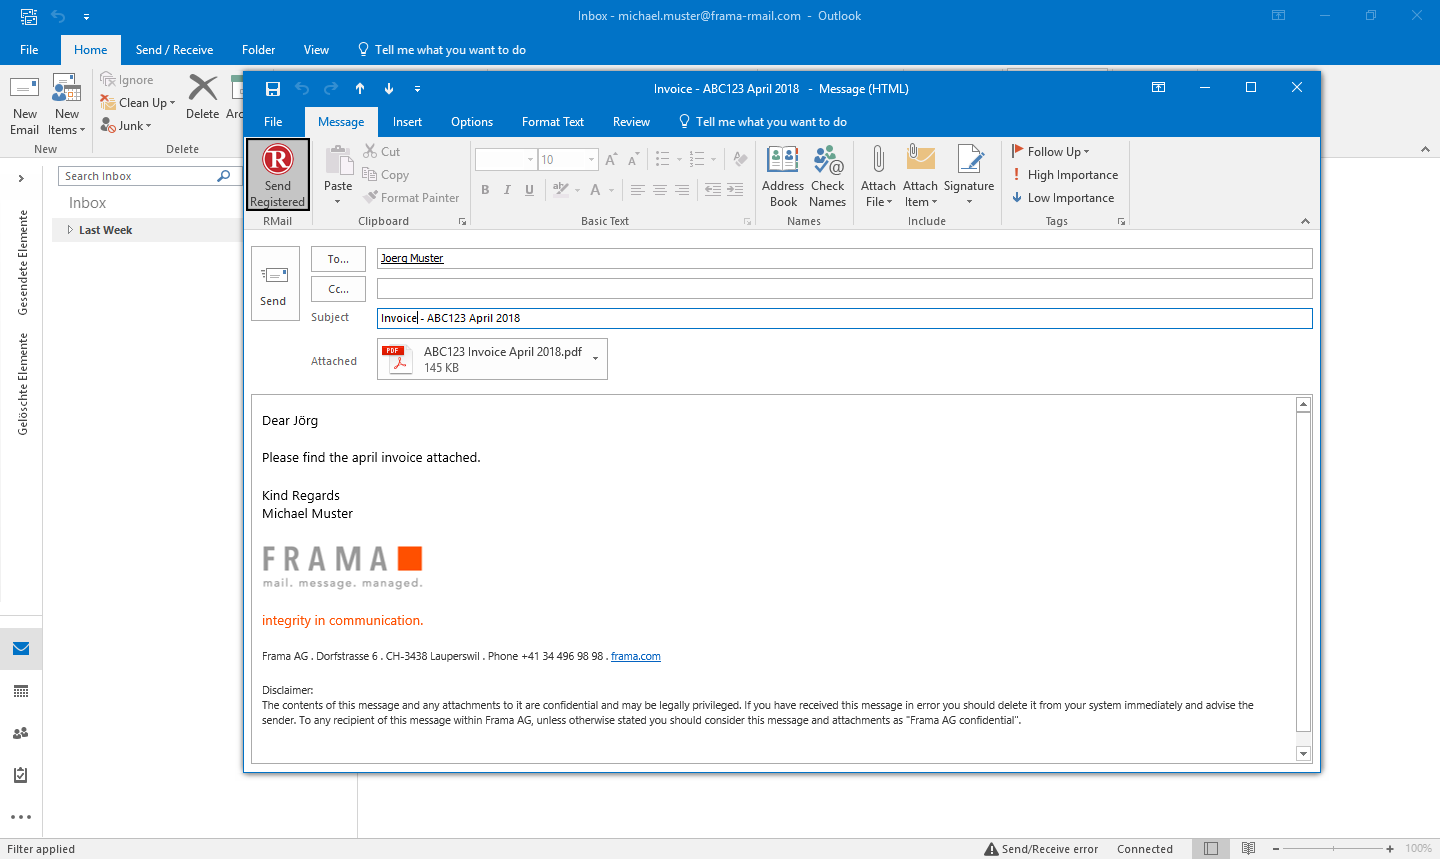 Sending registered email with Outlook - Step 2